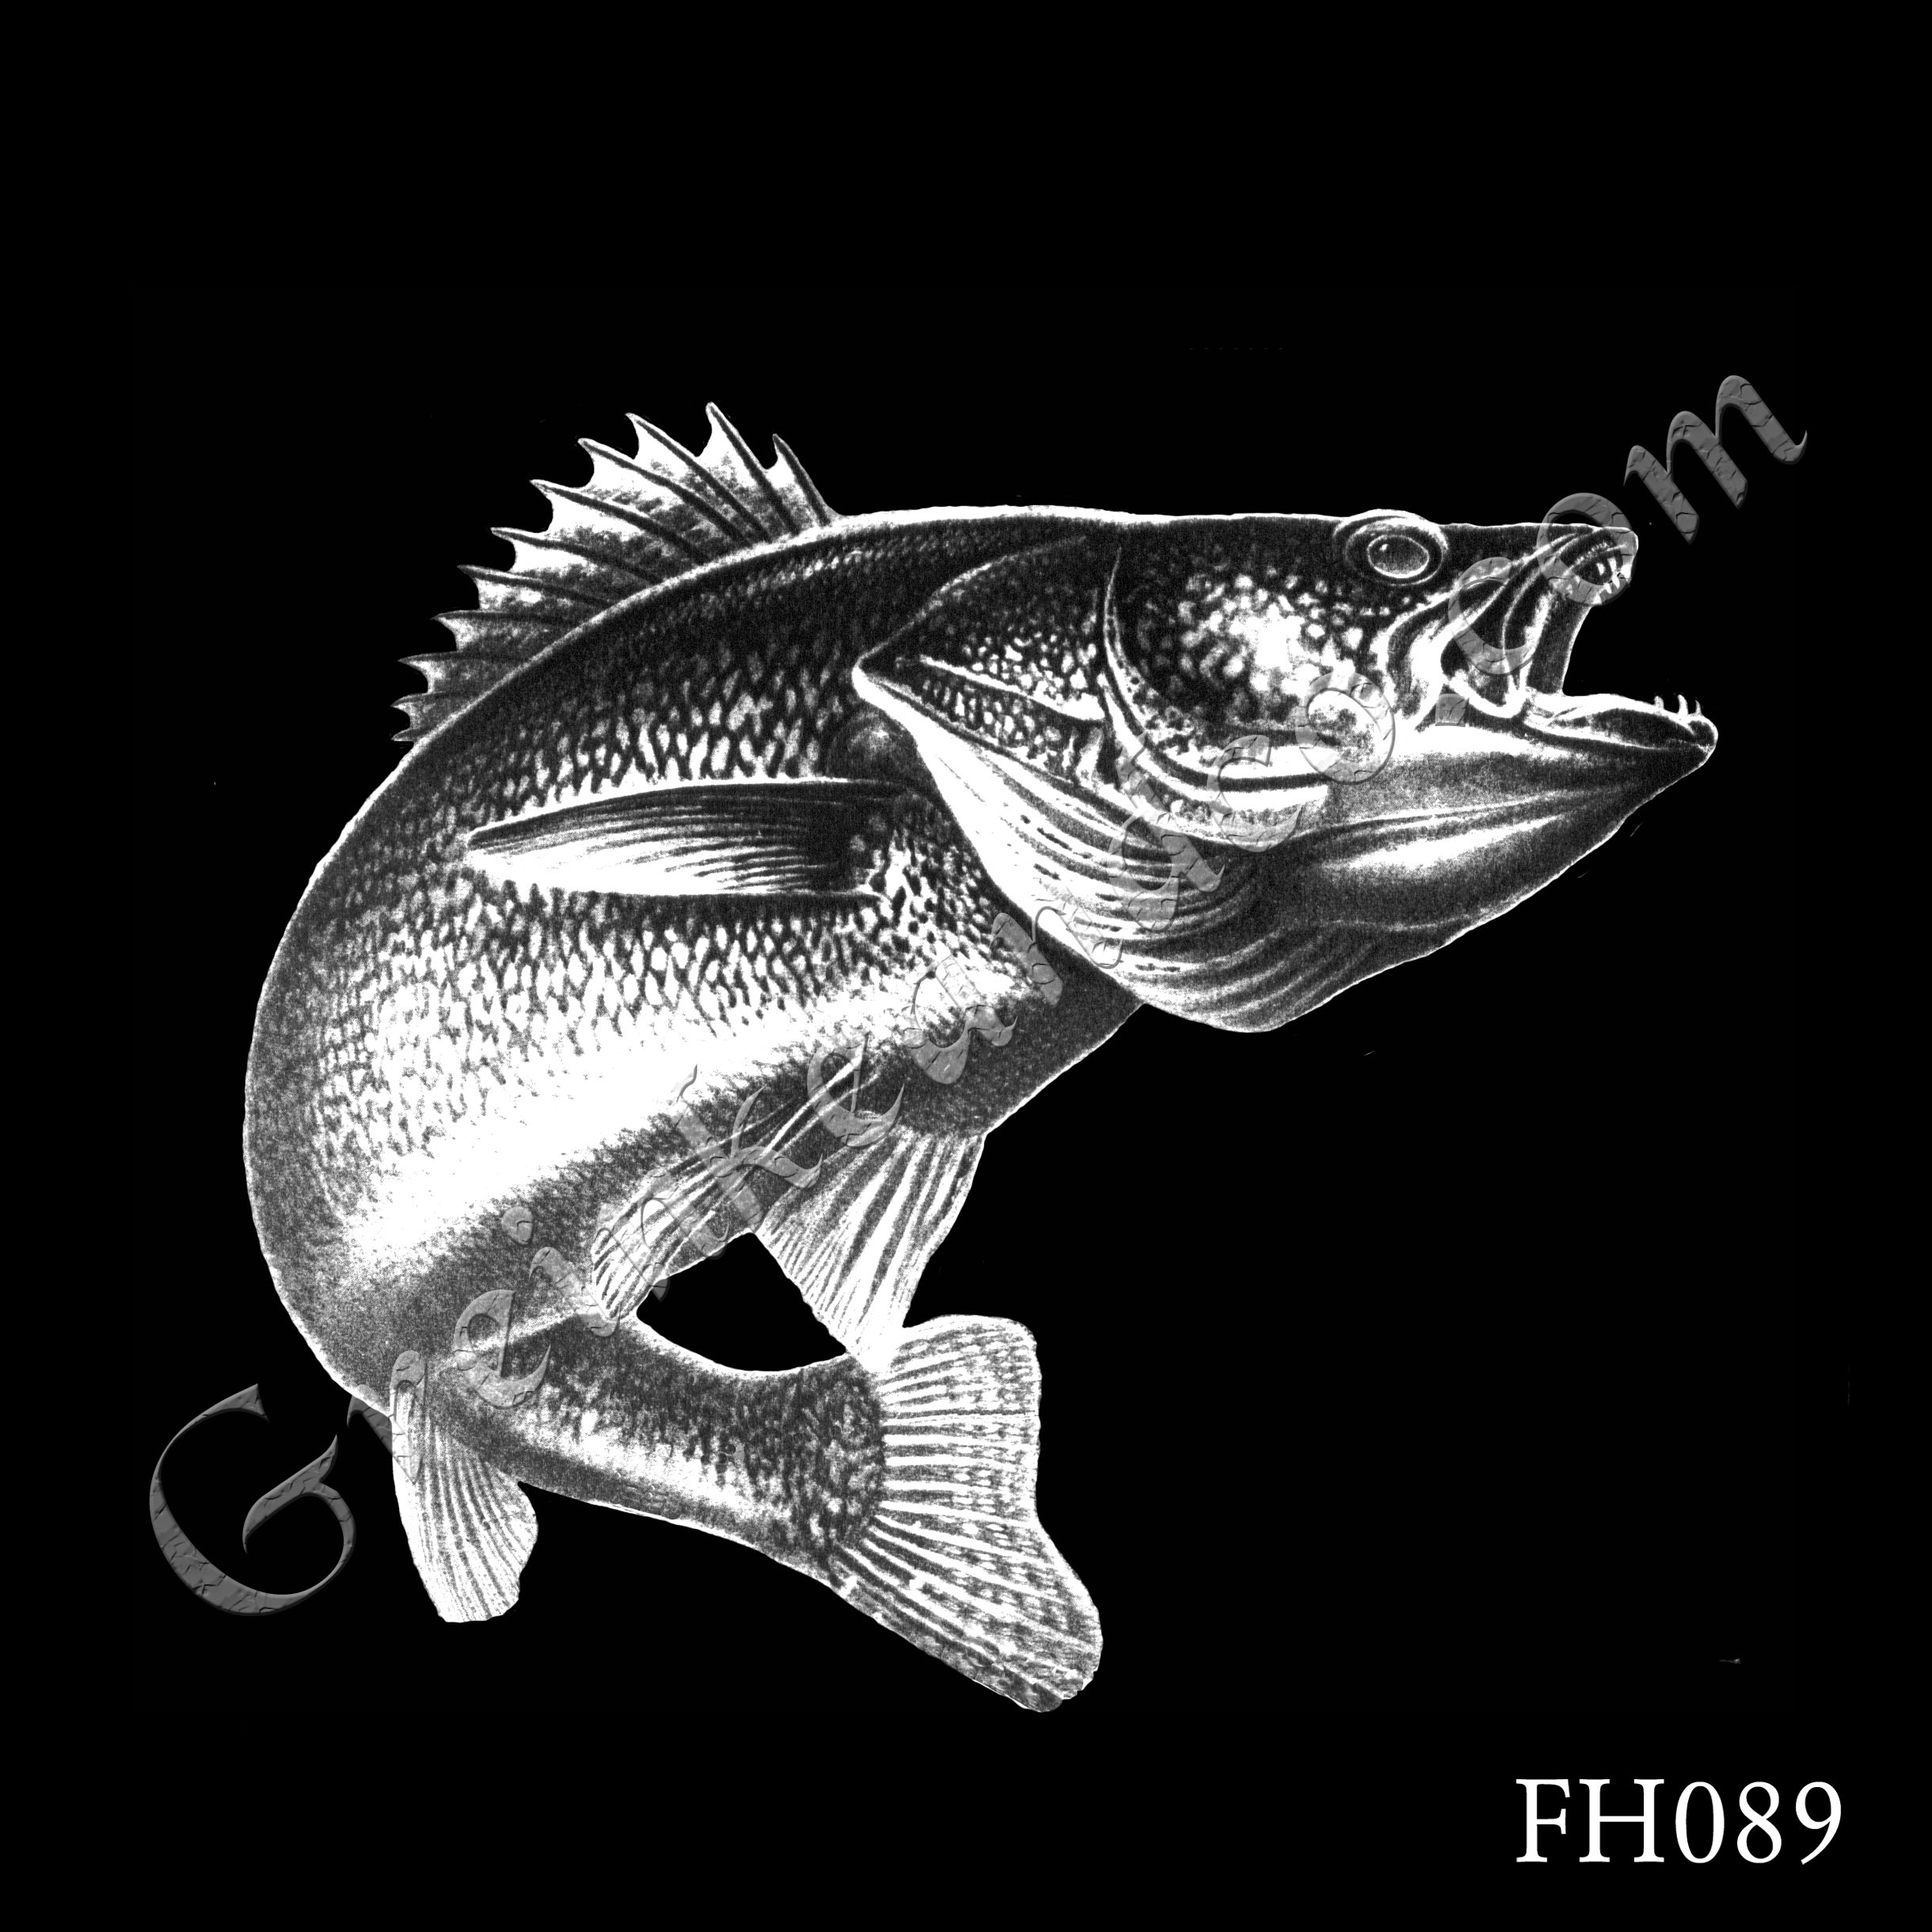 FH089 - Walleye